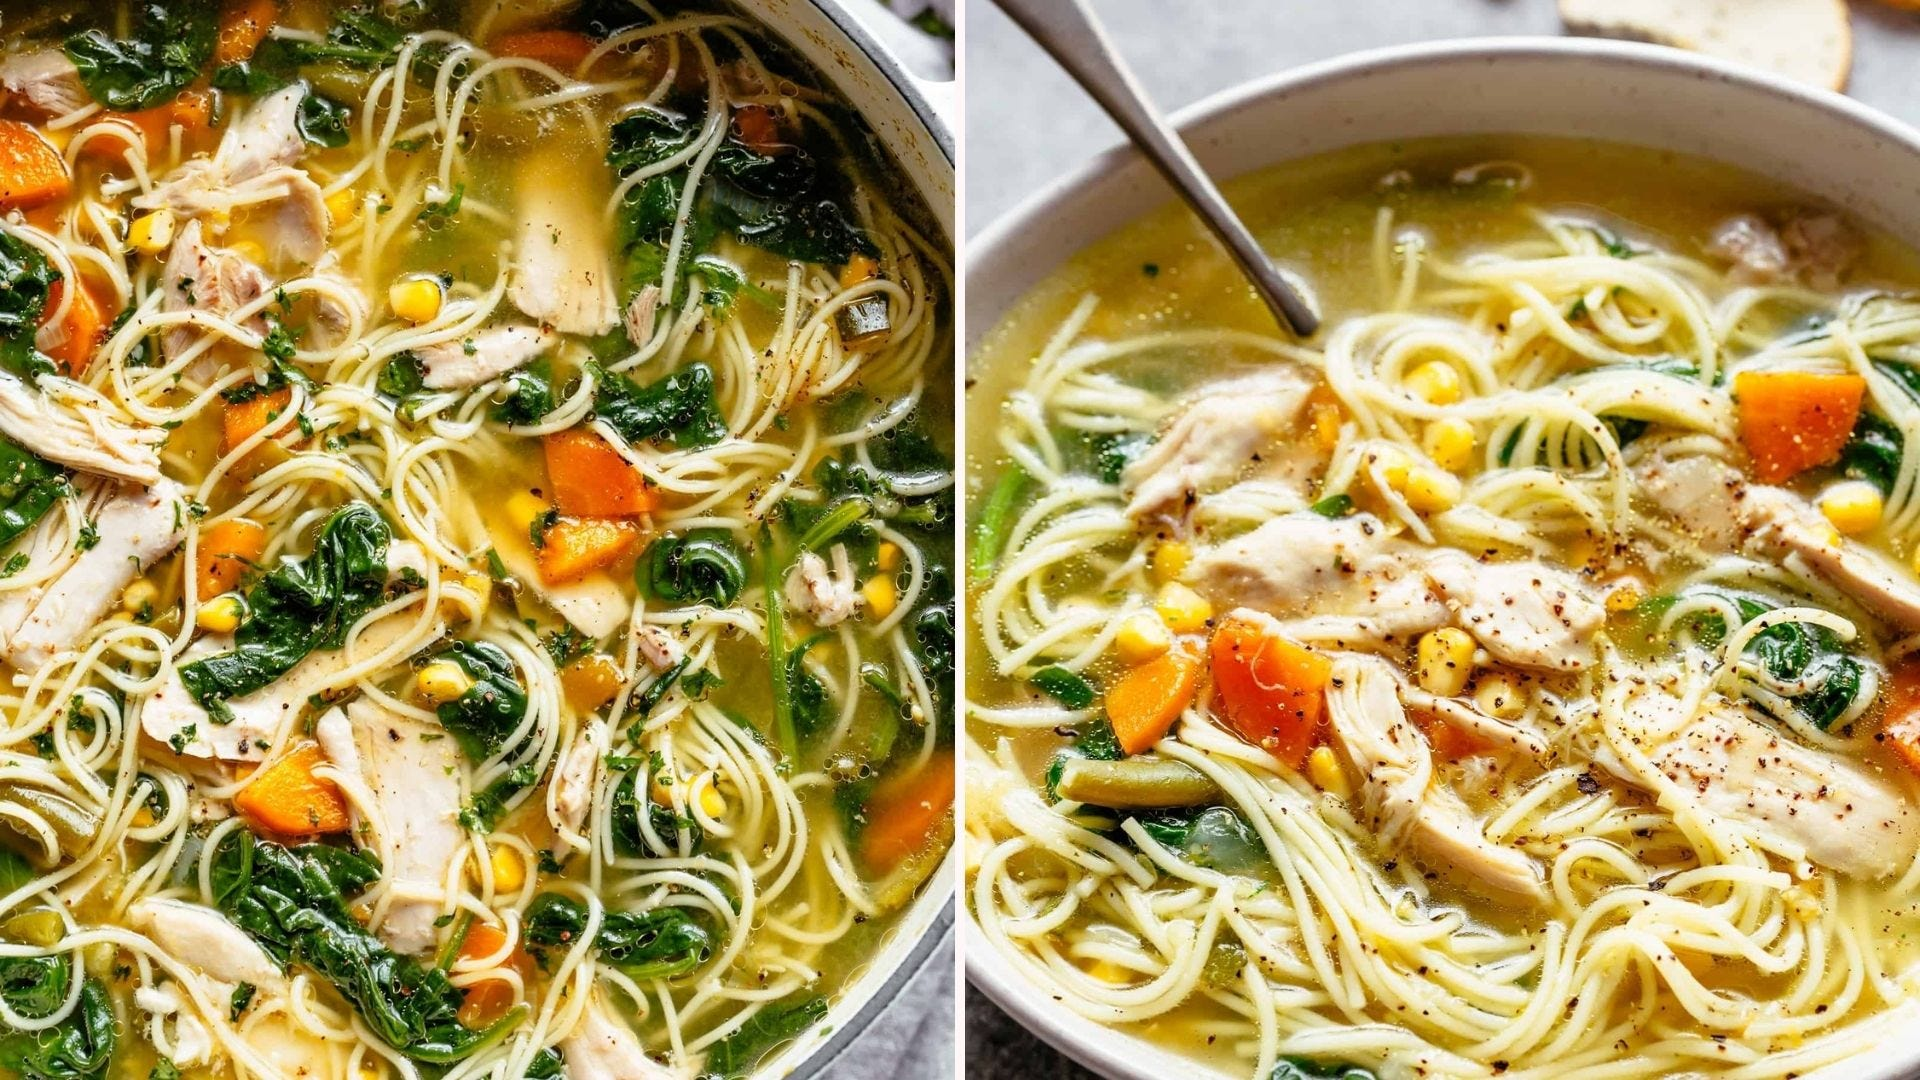 Homemade chicken noodle soup filled with greens, carrots, corn kernels, and chicken.